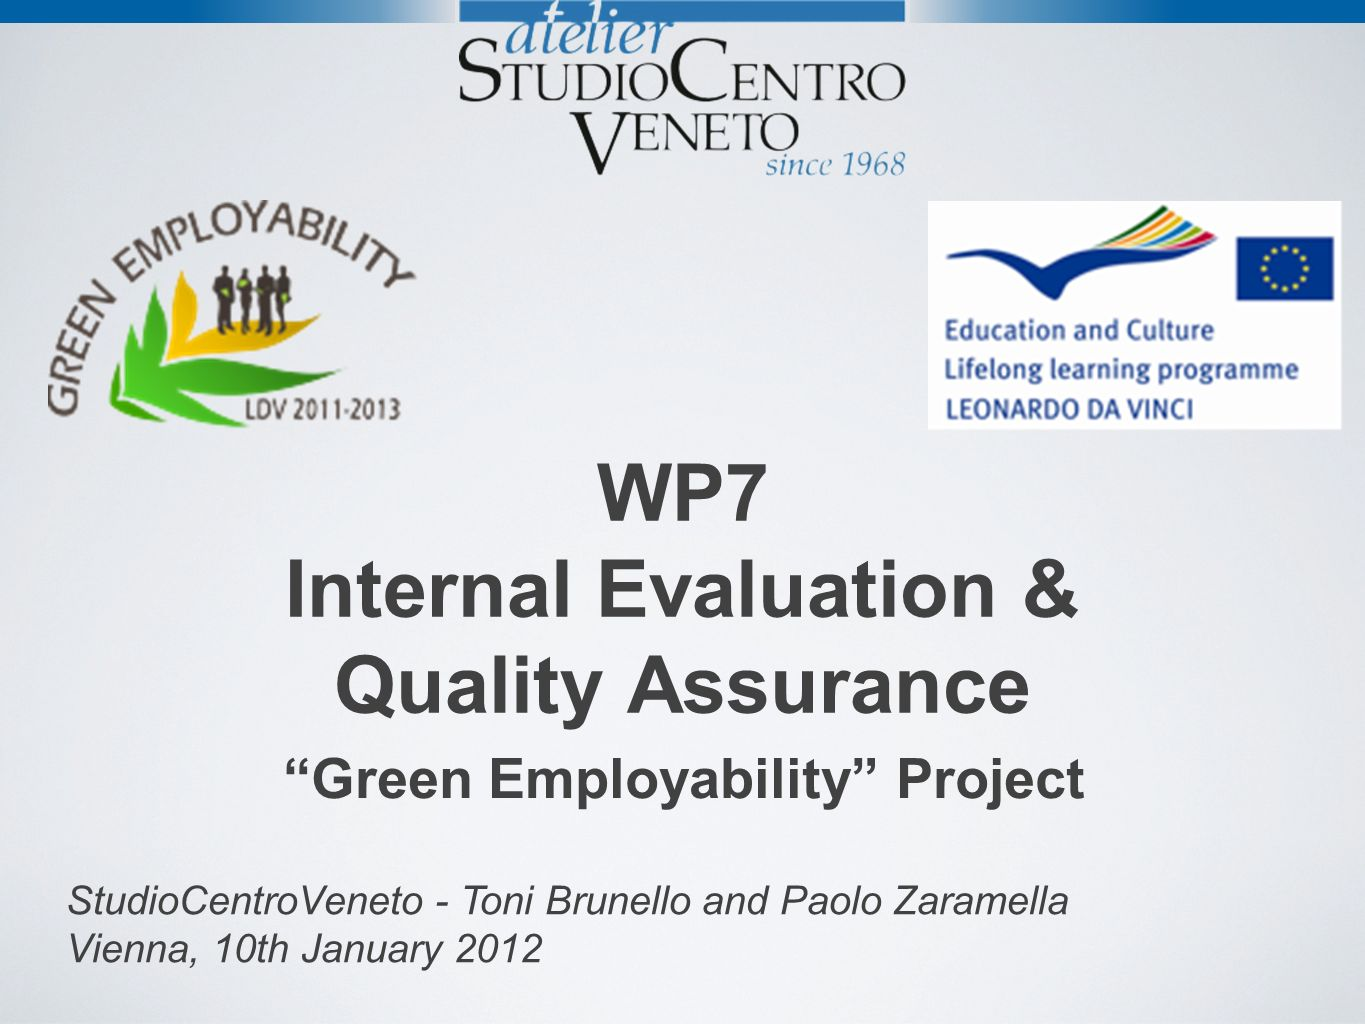 WP7 Internal Evaluation & Quality Assurance Green Employability Project StudioCentroVeneto - Toni Brunello and Paolo Zaramella Vienna, 10th January 2012